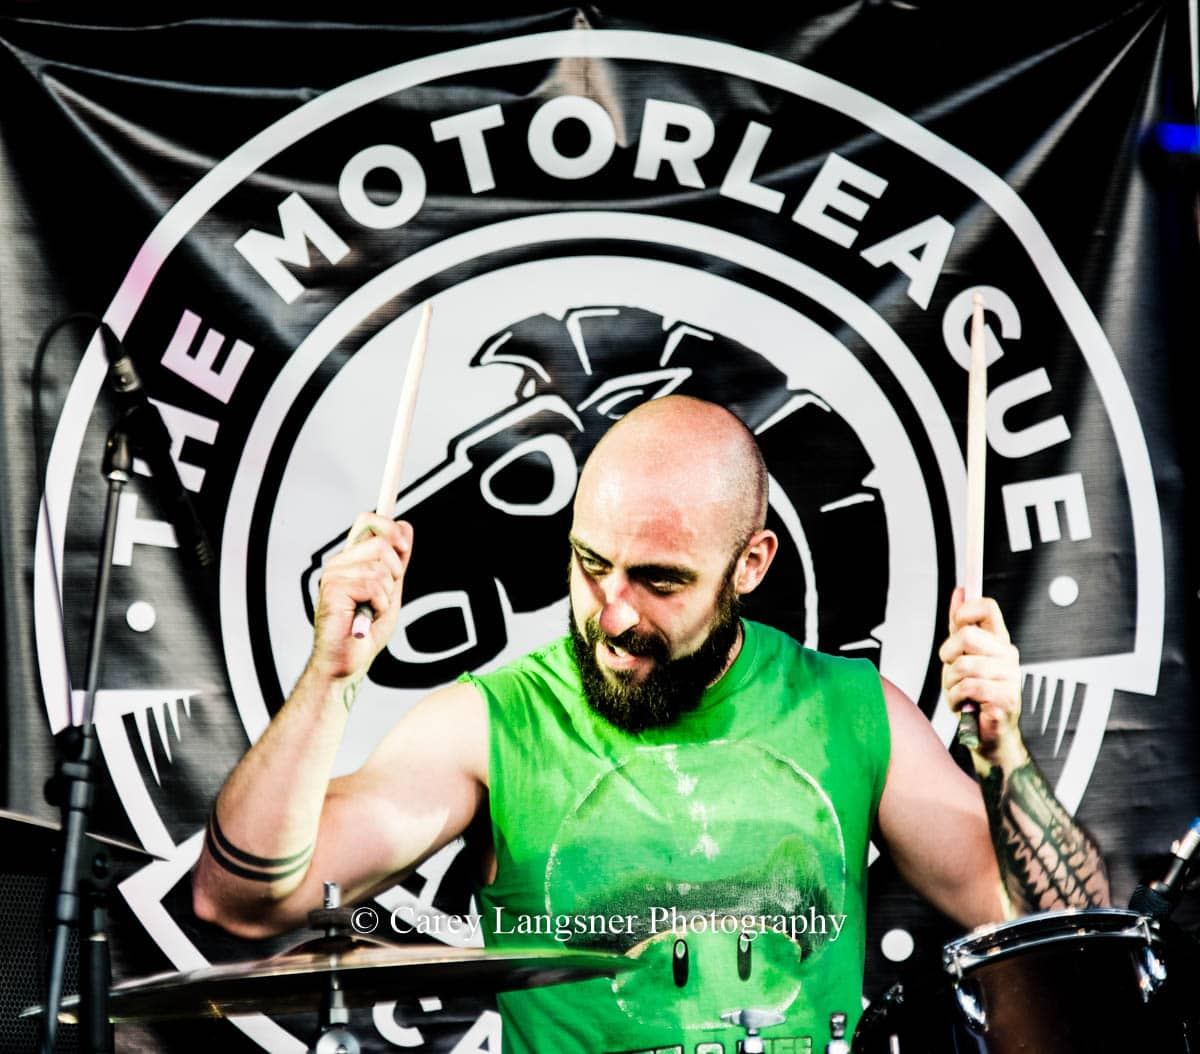 The Motorleague-1